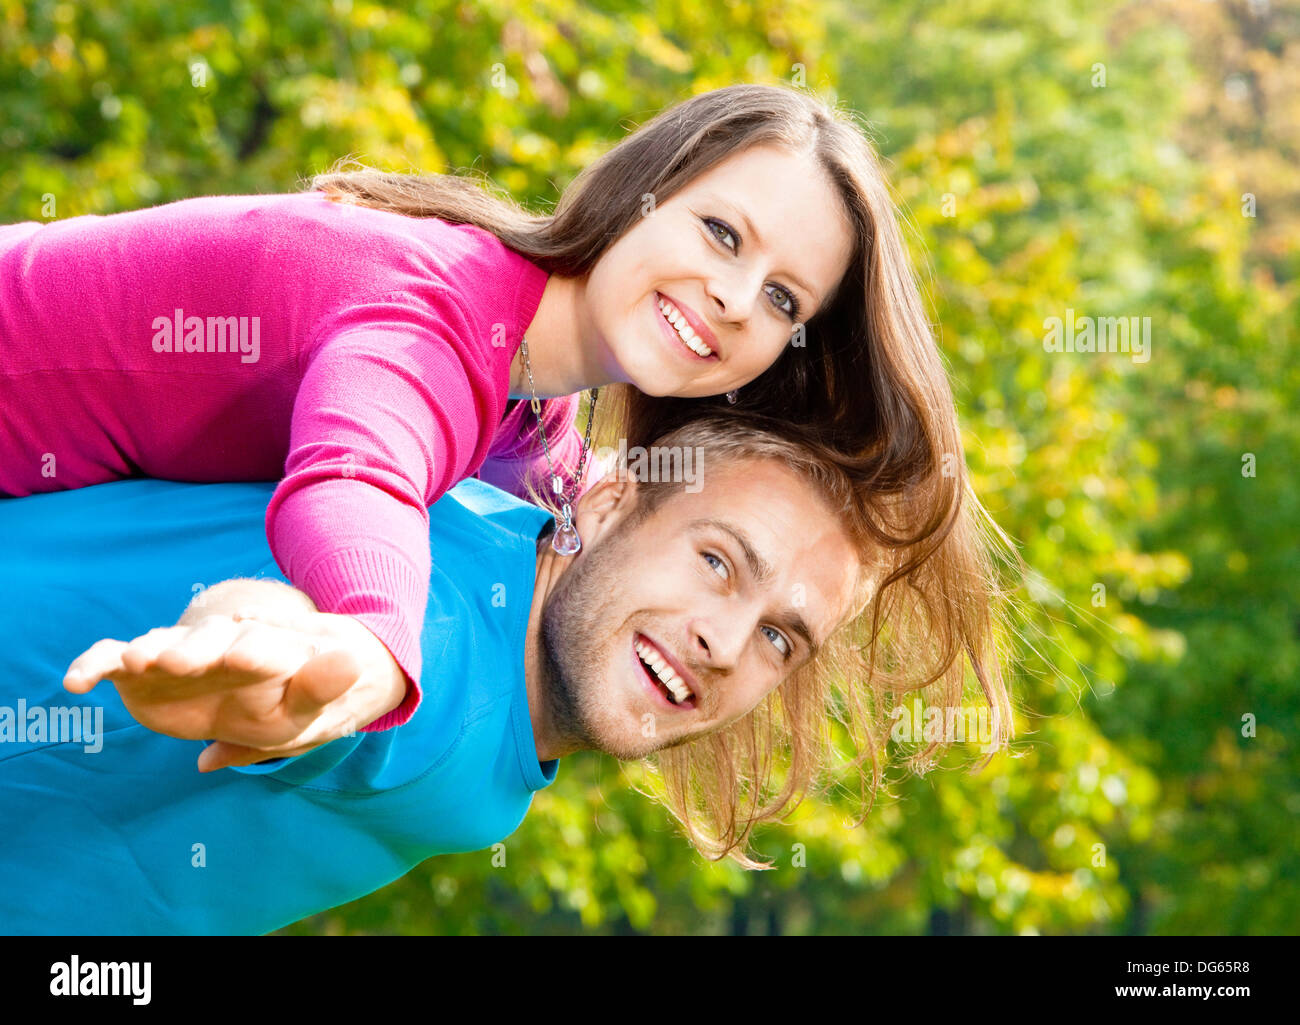 happy young couple piggybacking, arms outstretched, smiling. - Stock Image